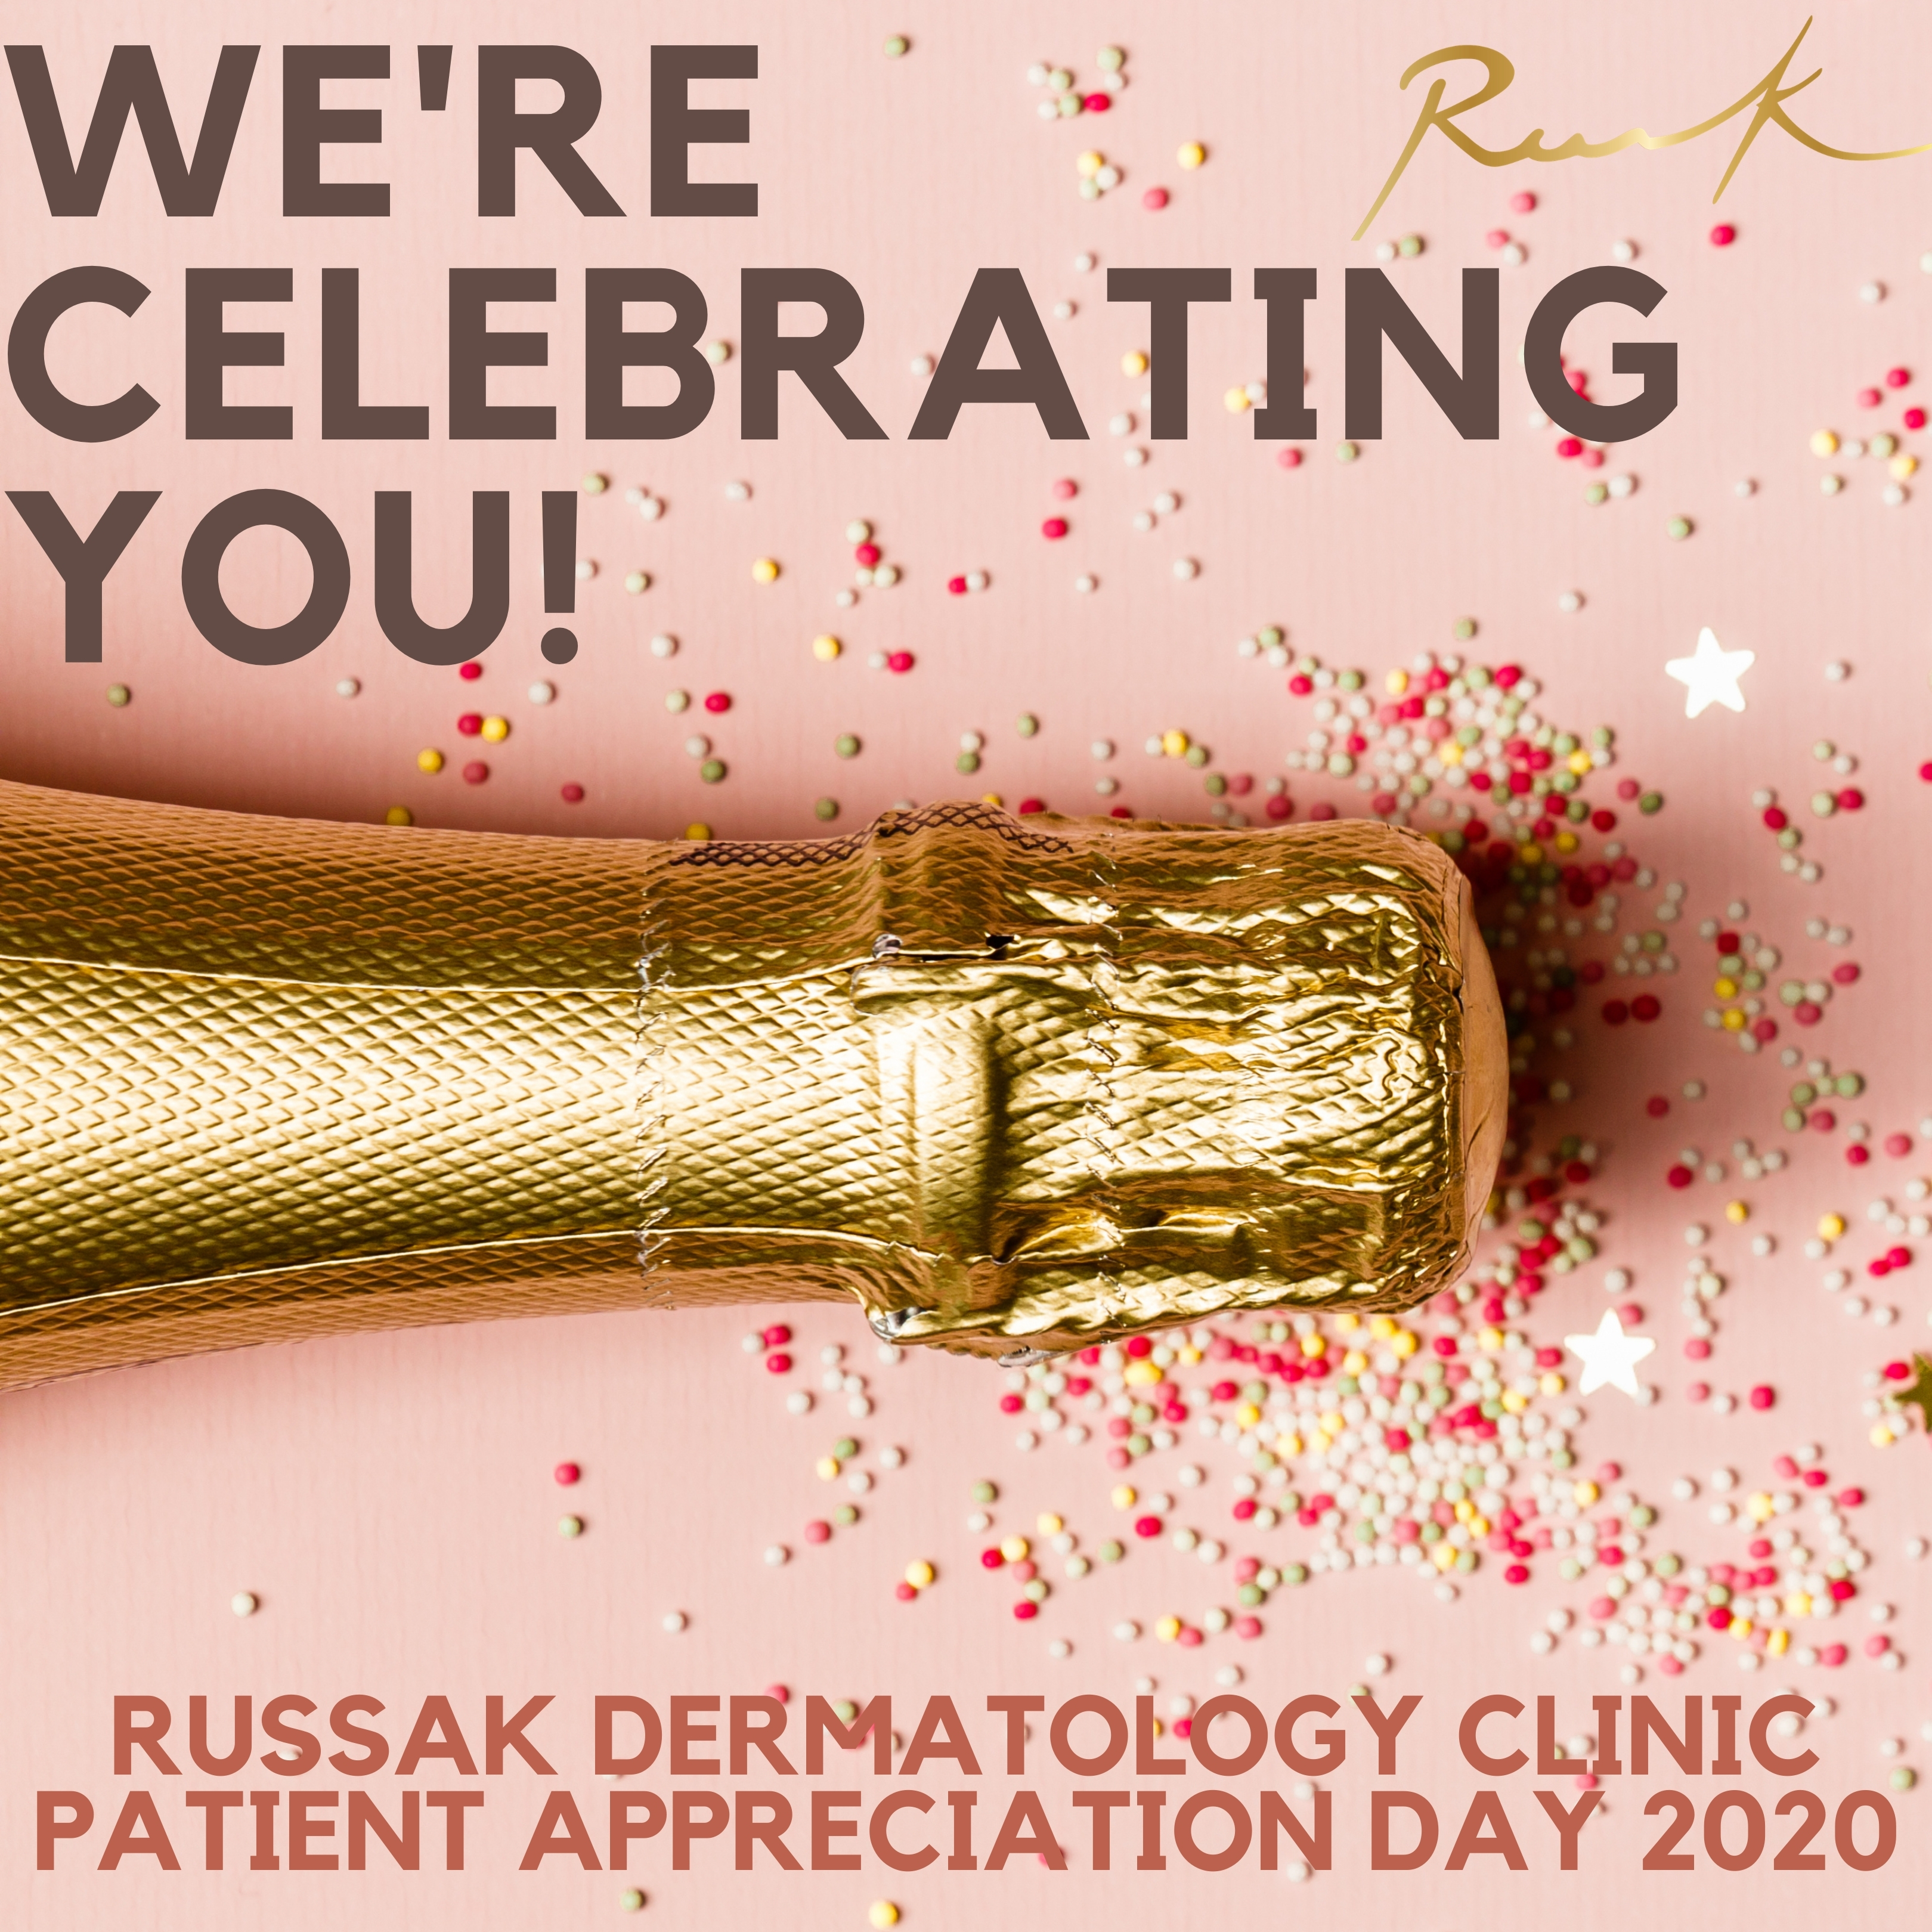 Patient Appreciation Day is Back on Wednesday, October 28th!